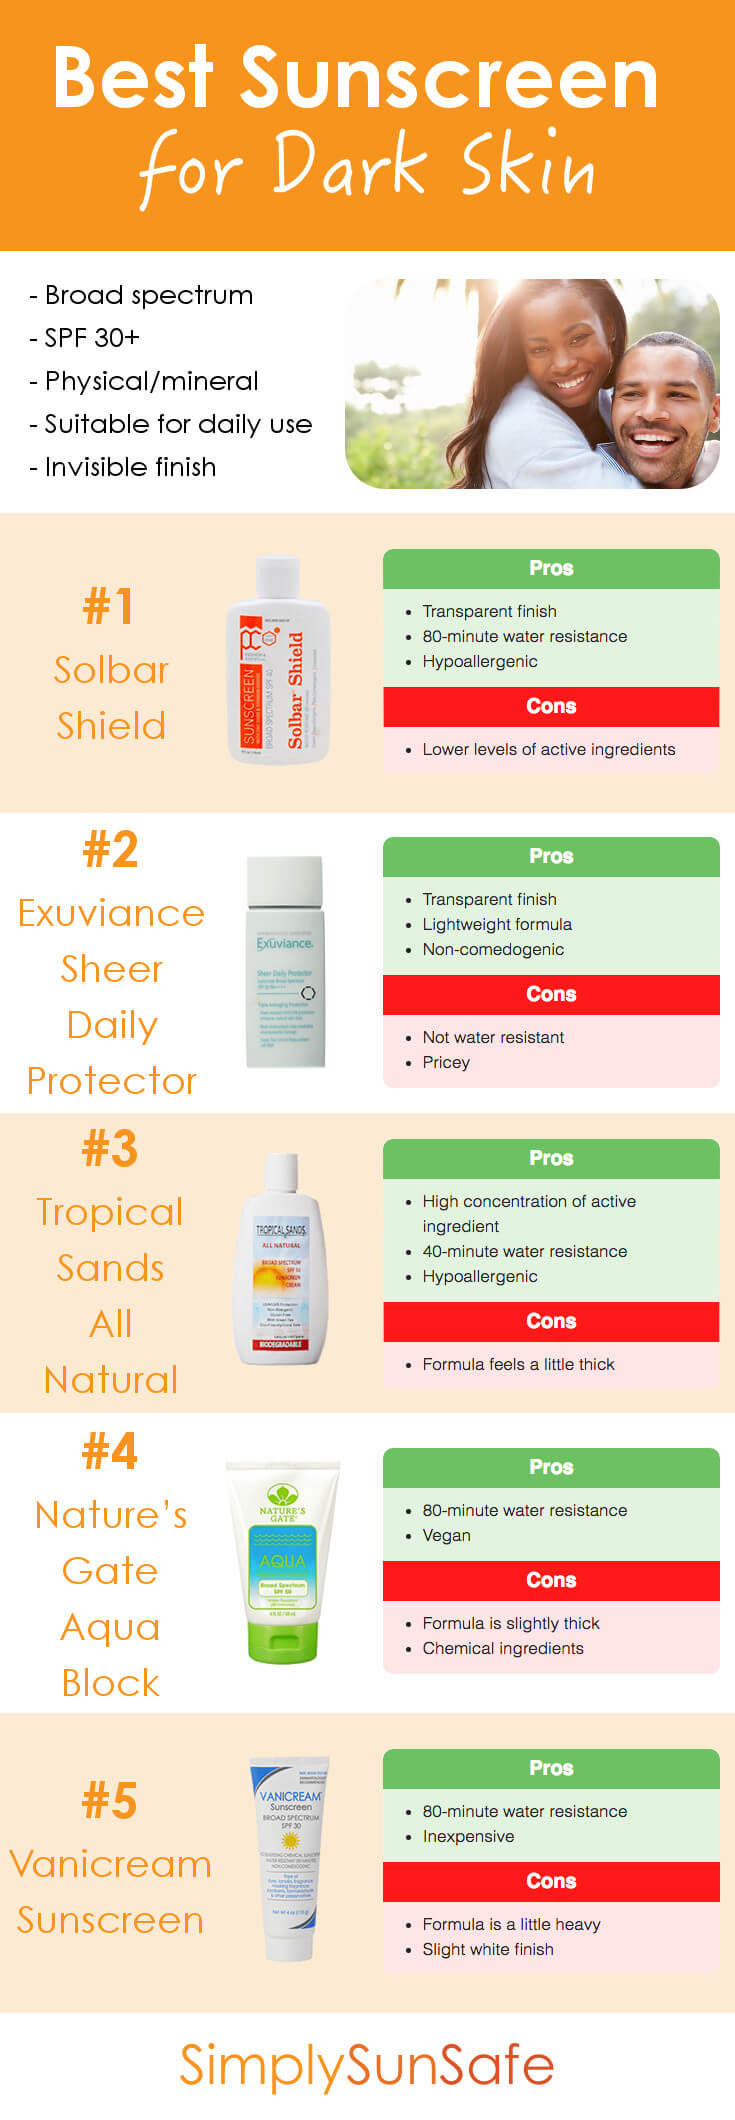 Best Sunscreen for Dark Skin Pinterest